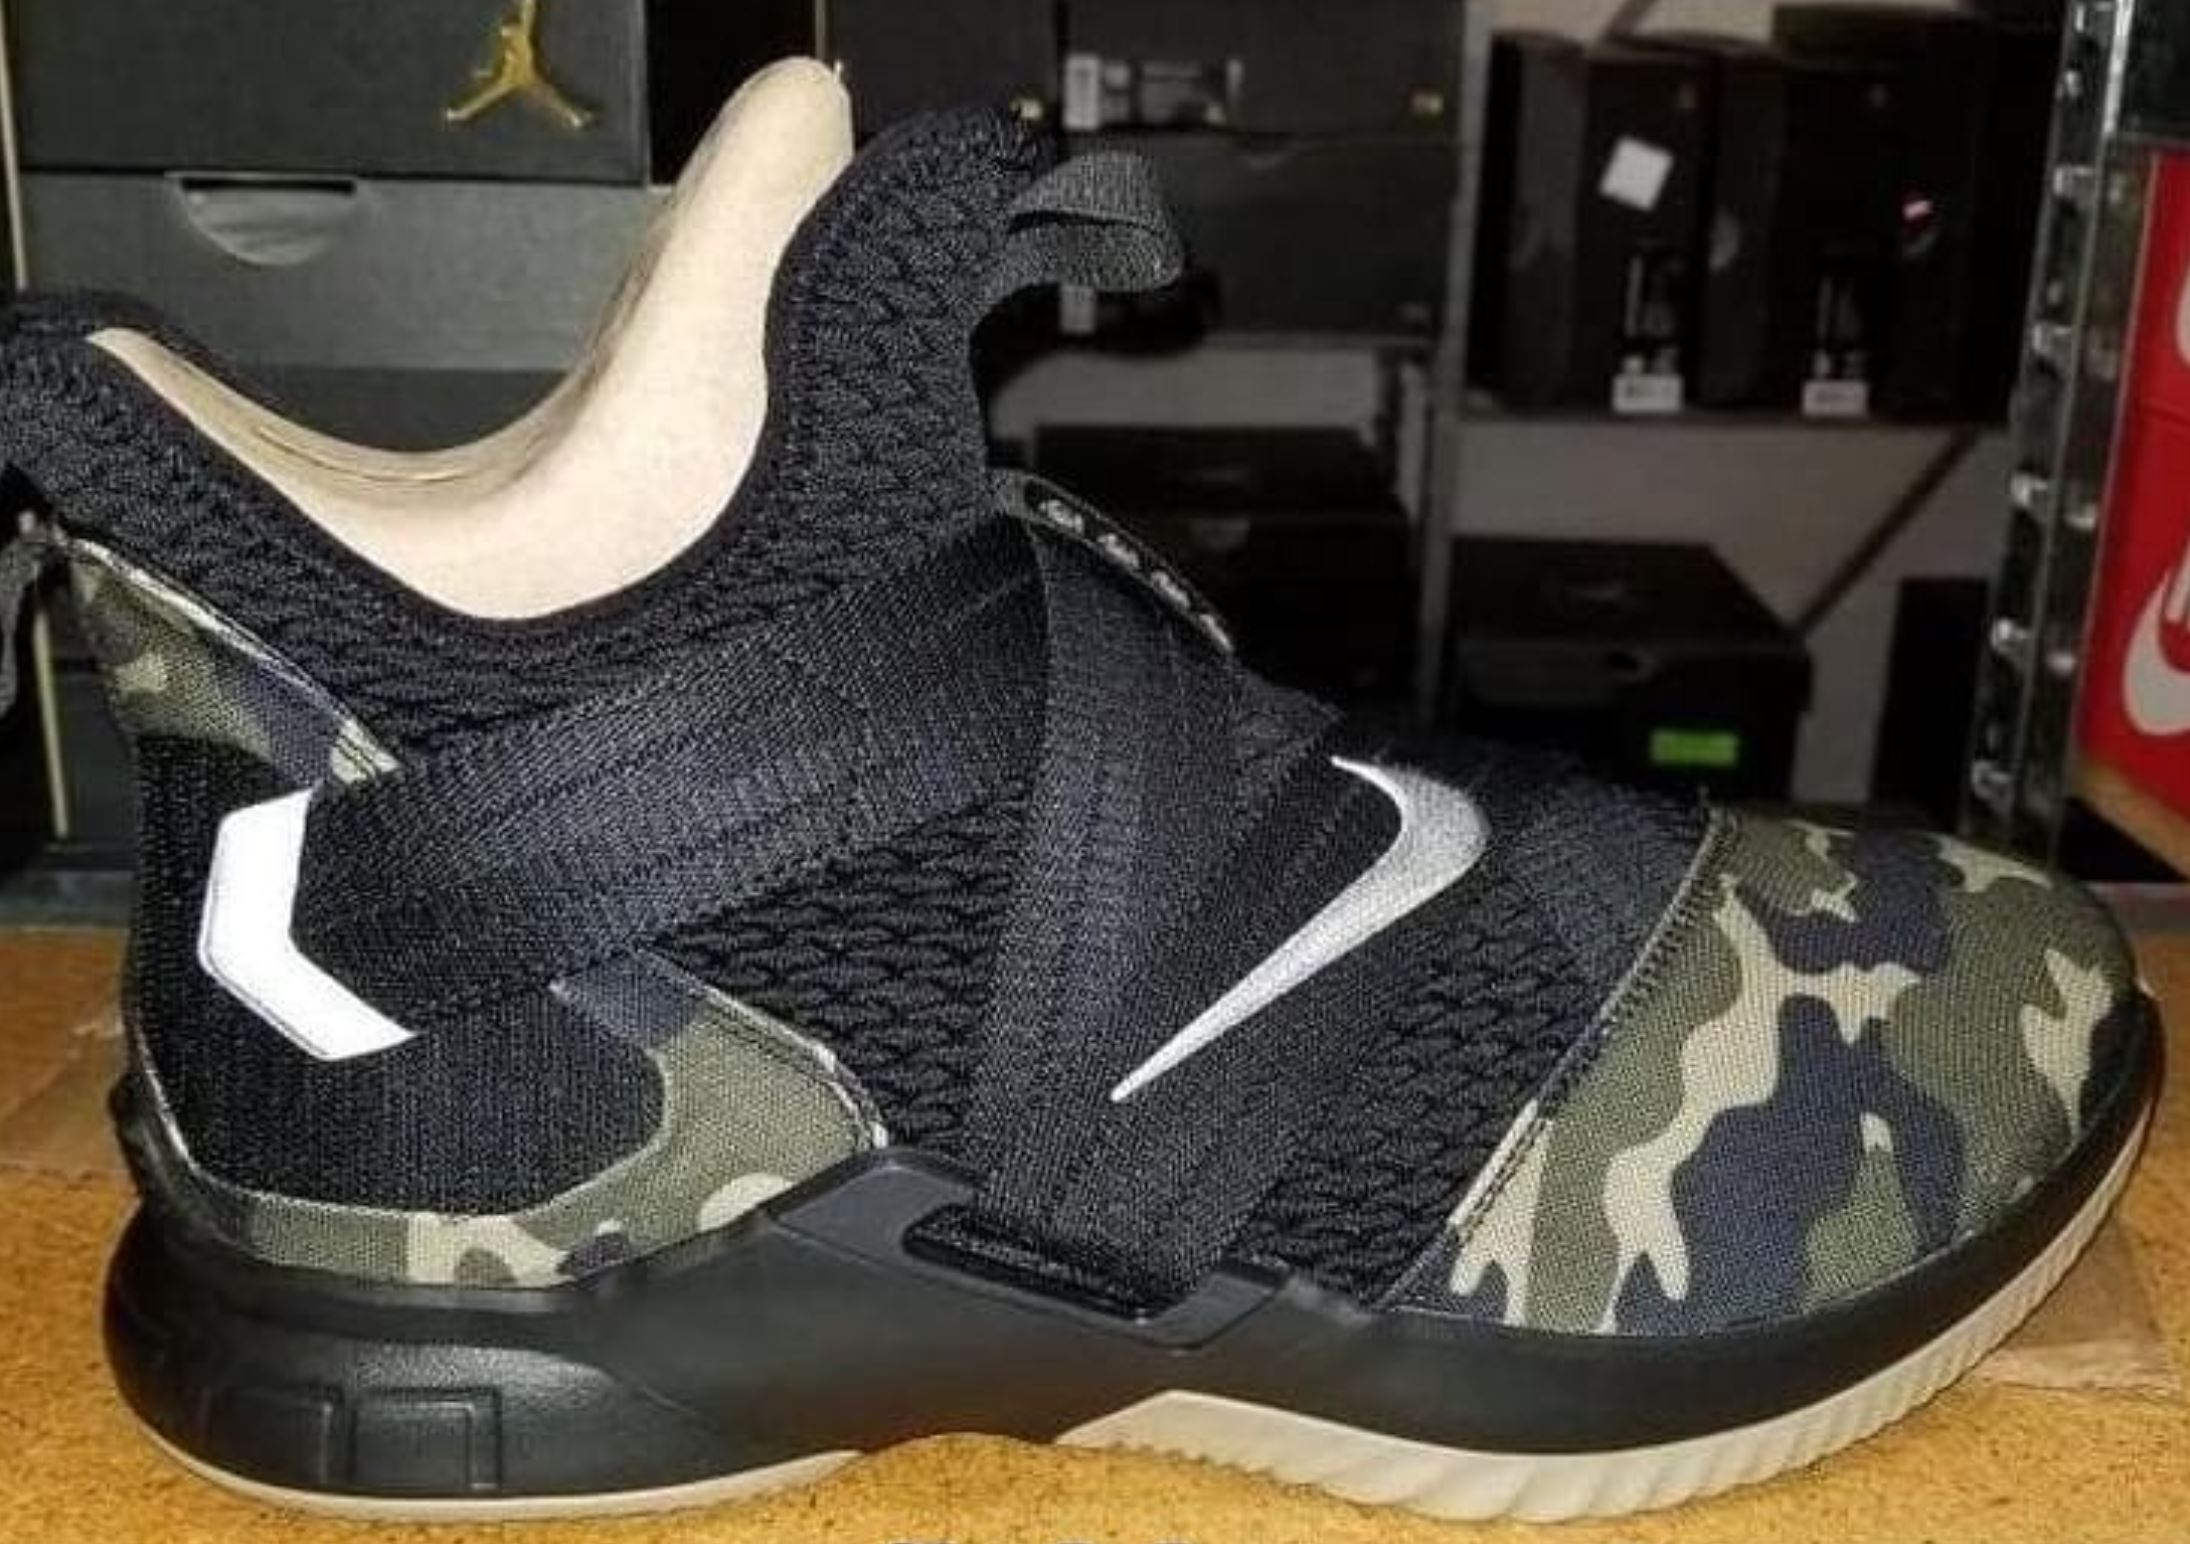 a224adc26d7d lebron soldier 12 Archives - WearTesters